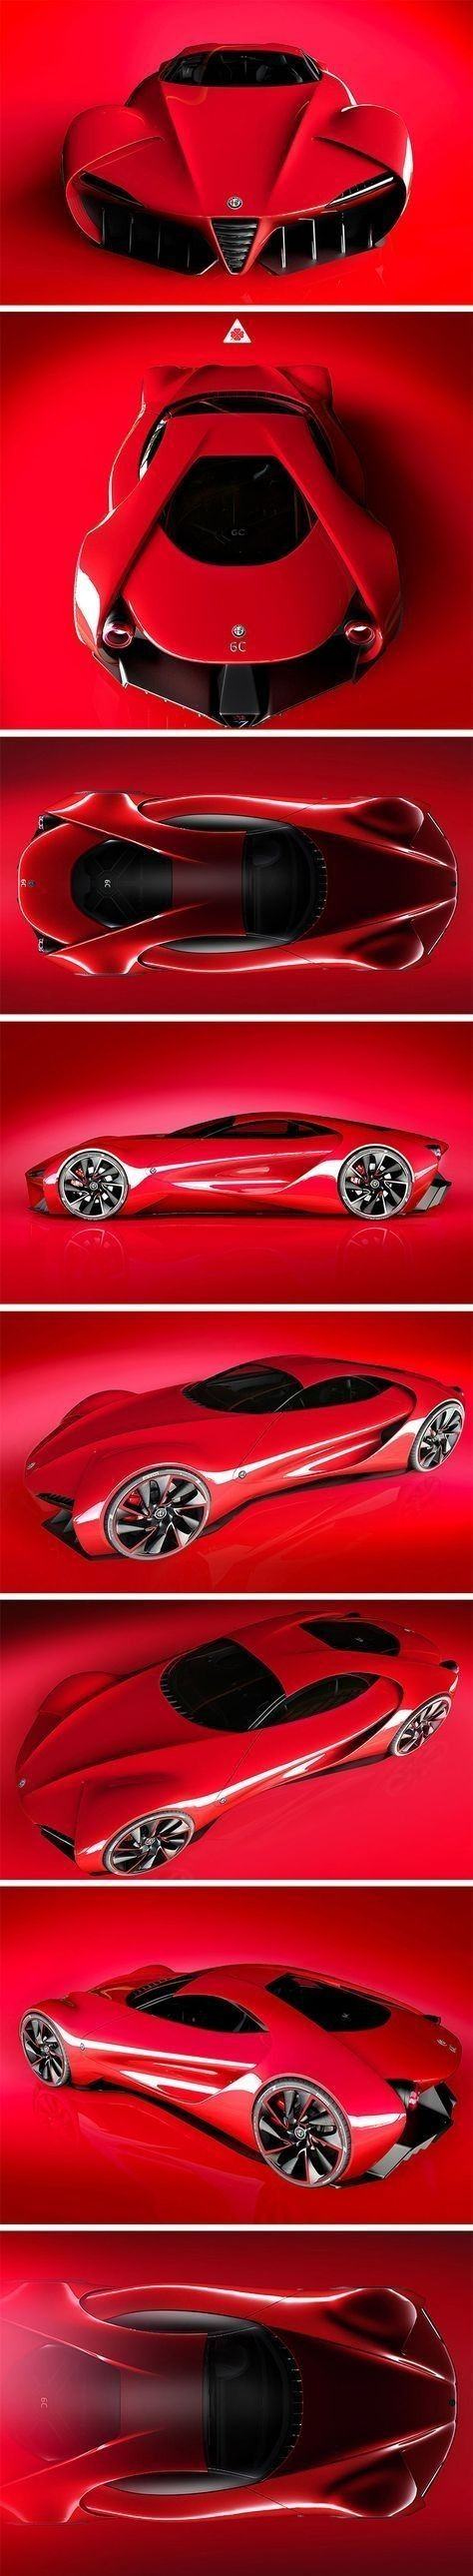 89 Best Concepts Images On Pinterest Autos Vehicles And Automobile F12 Selfdriving Gps Following Car Embedded Systems Learning Find This Pin More By Felix Daroca